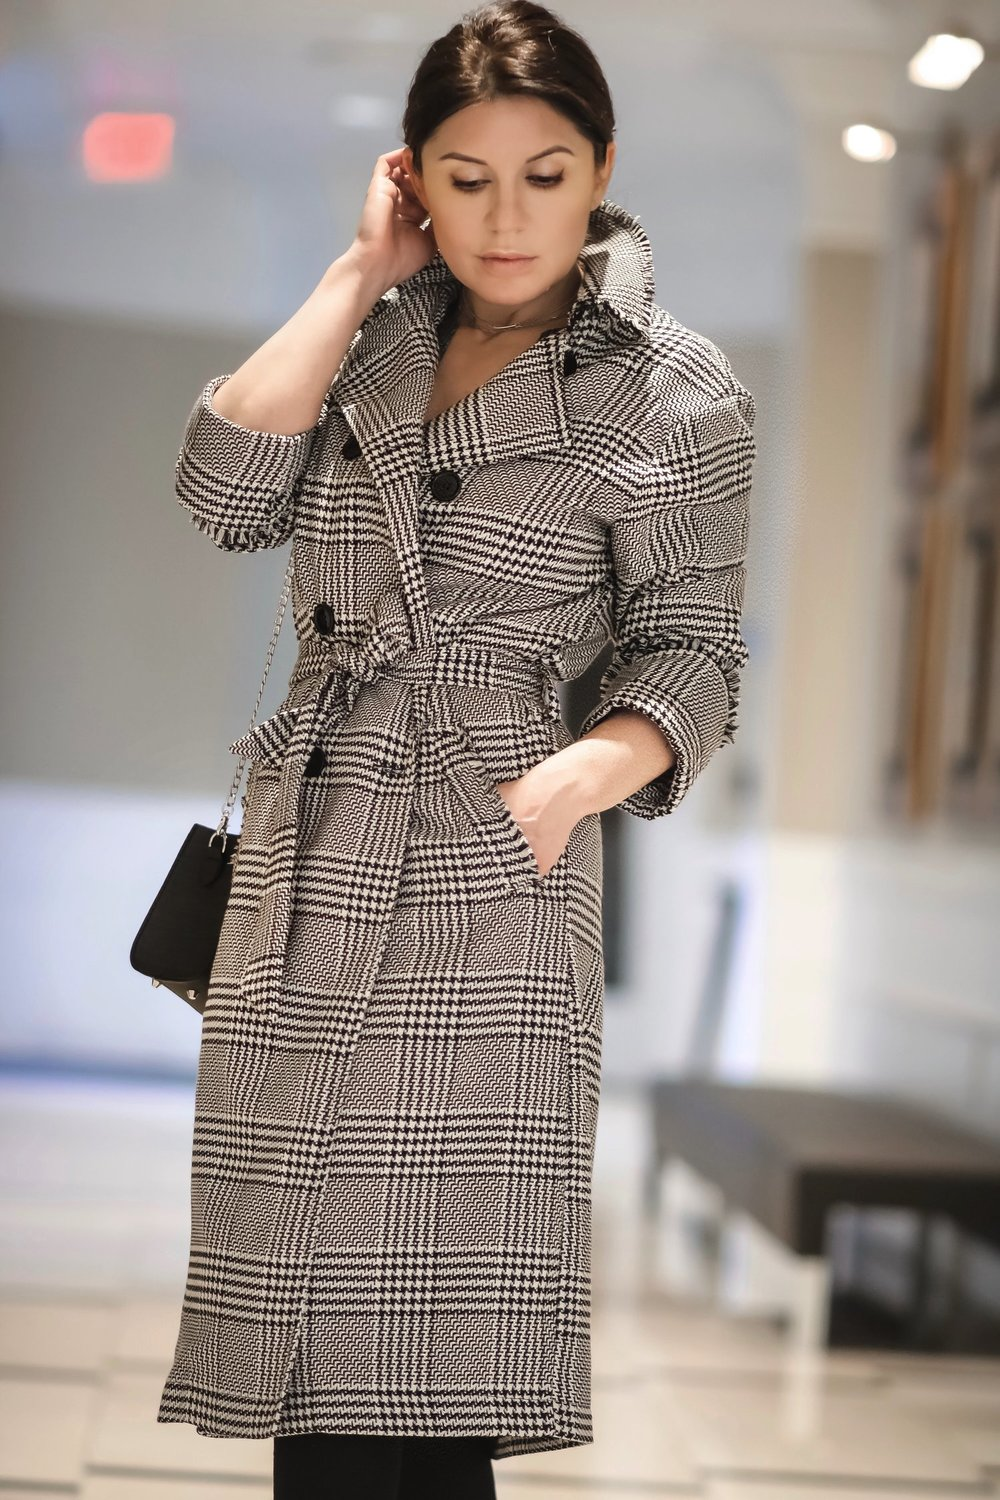 Isabel-alexander-plaid-coat-WhatsMode